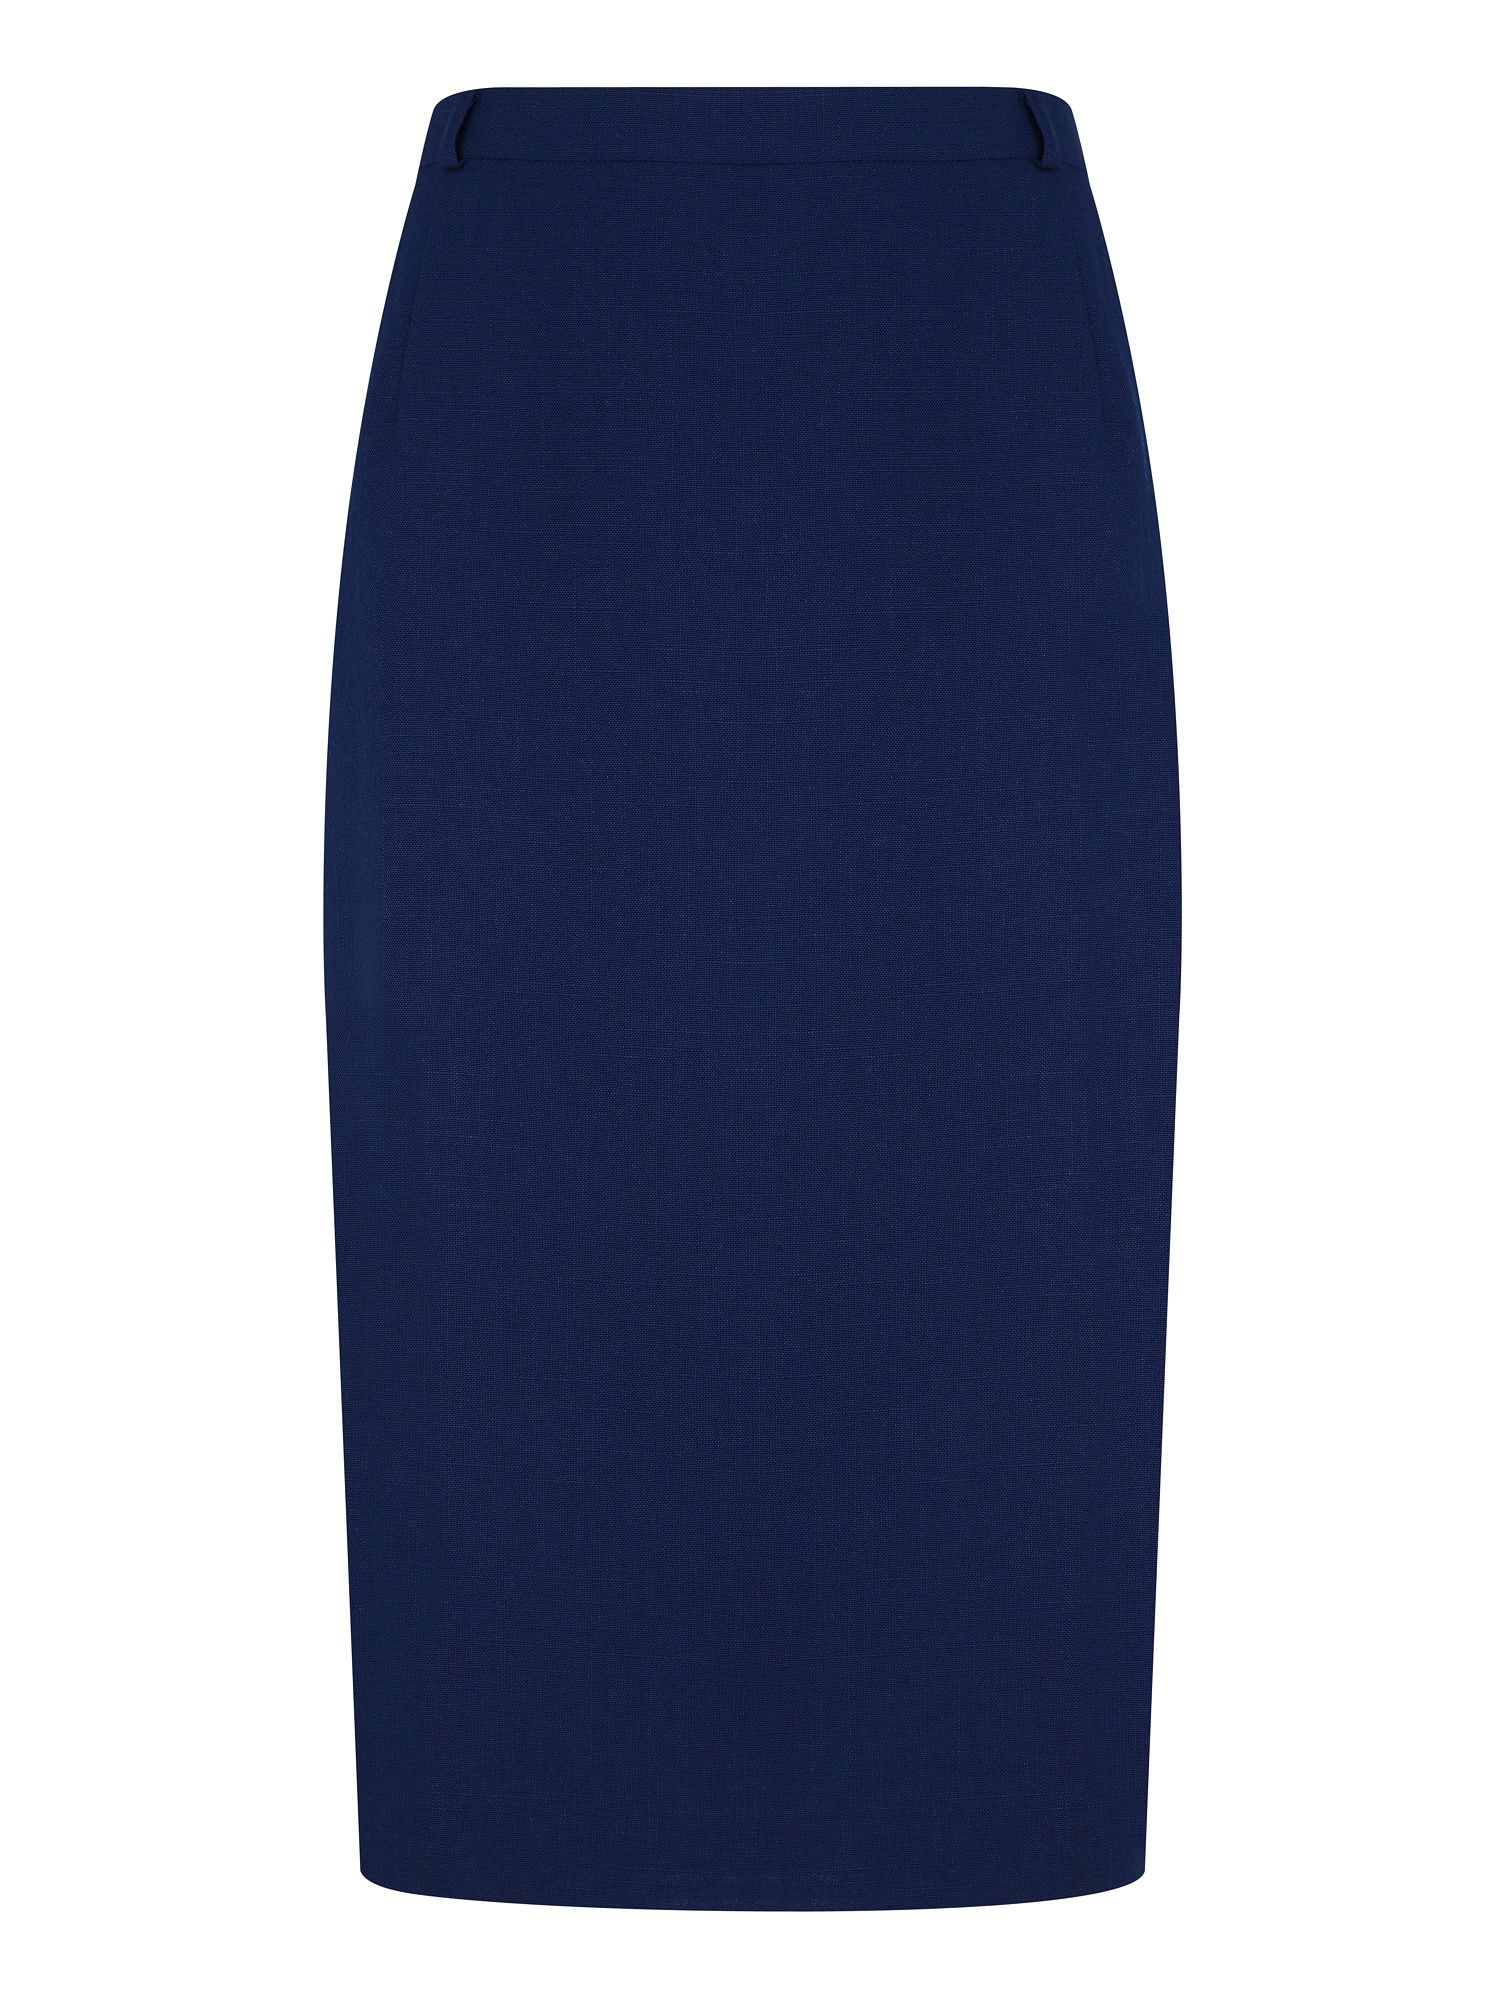 Stitch detail pencil skirt